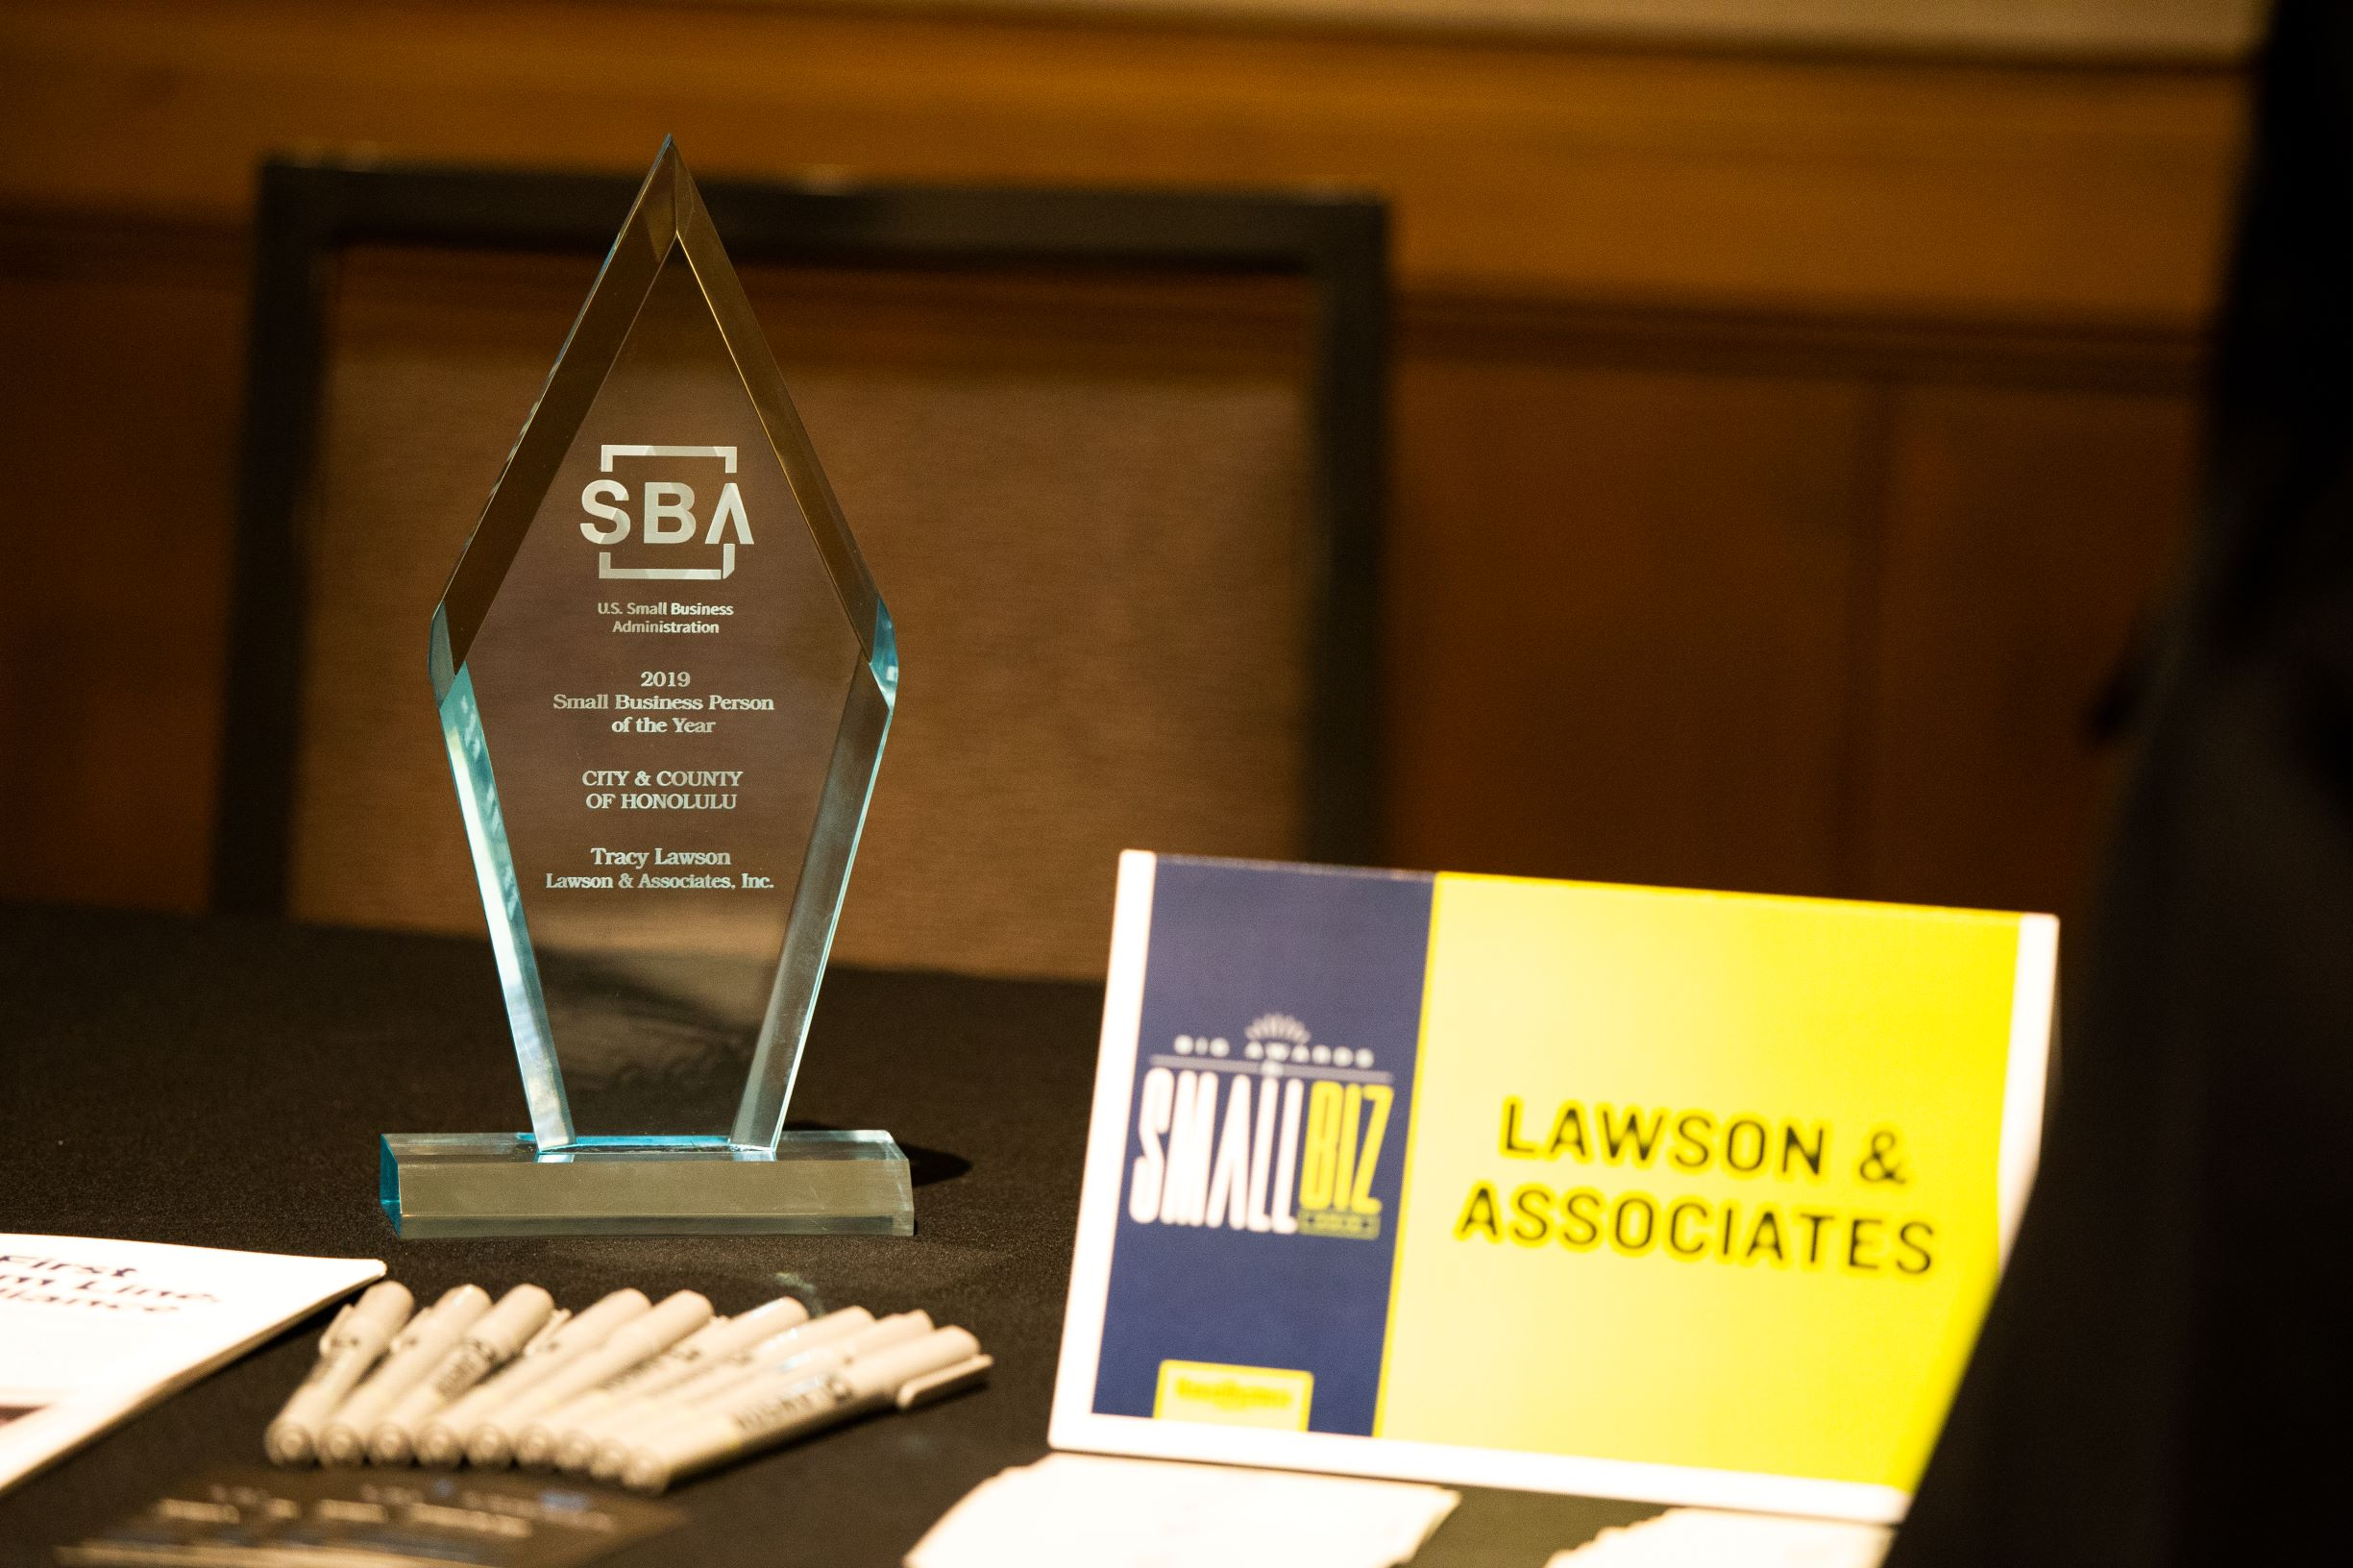 "- ""Thank you to 721, our marketing and communications firm. Without you, this SBA Small Business Person of the year award would not have been possible.""-Tracy Lawson, President & Founder of Lawson & Associates, Inc."